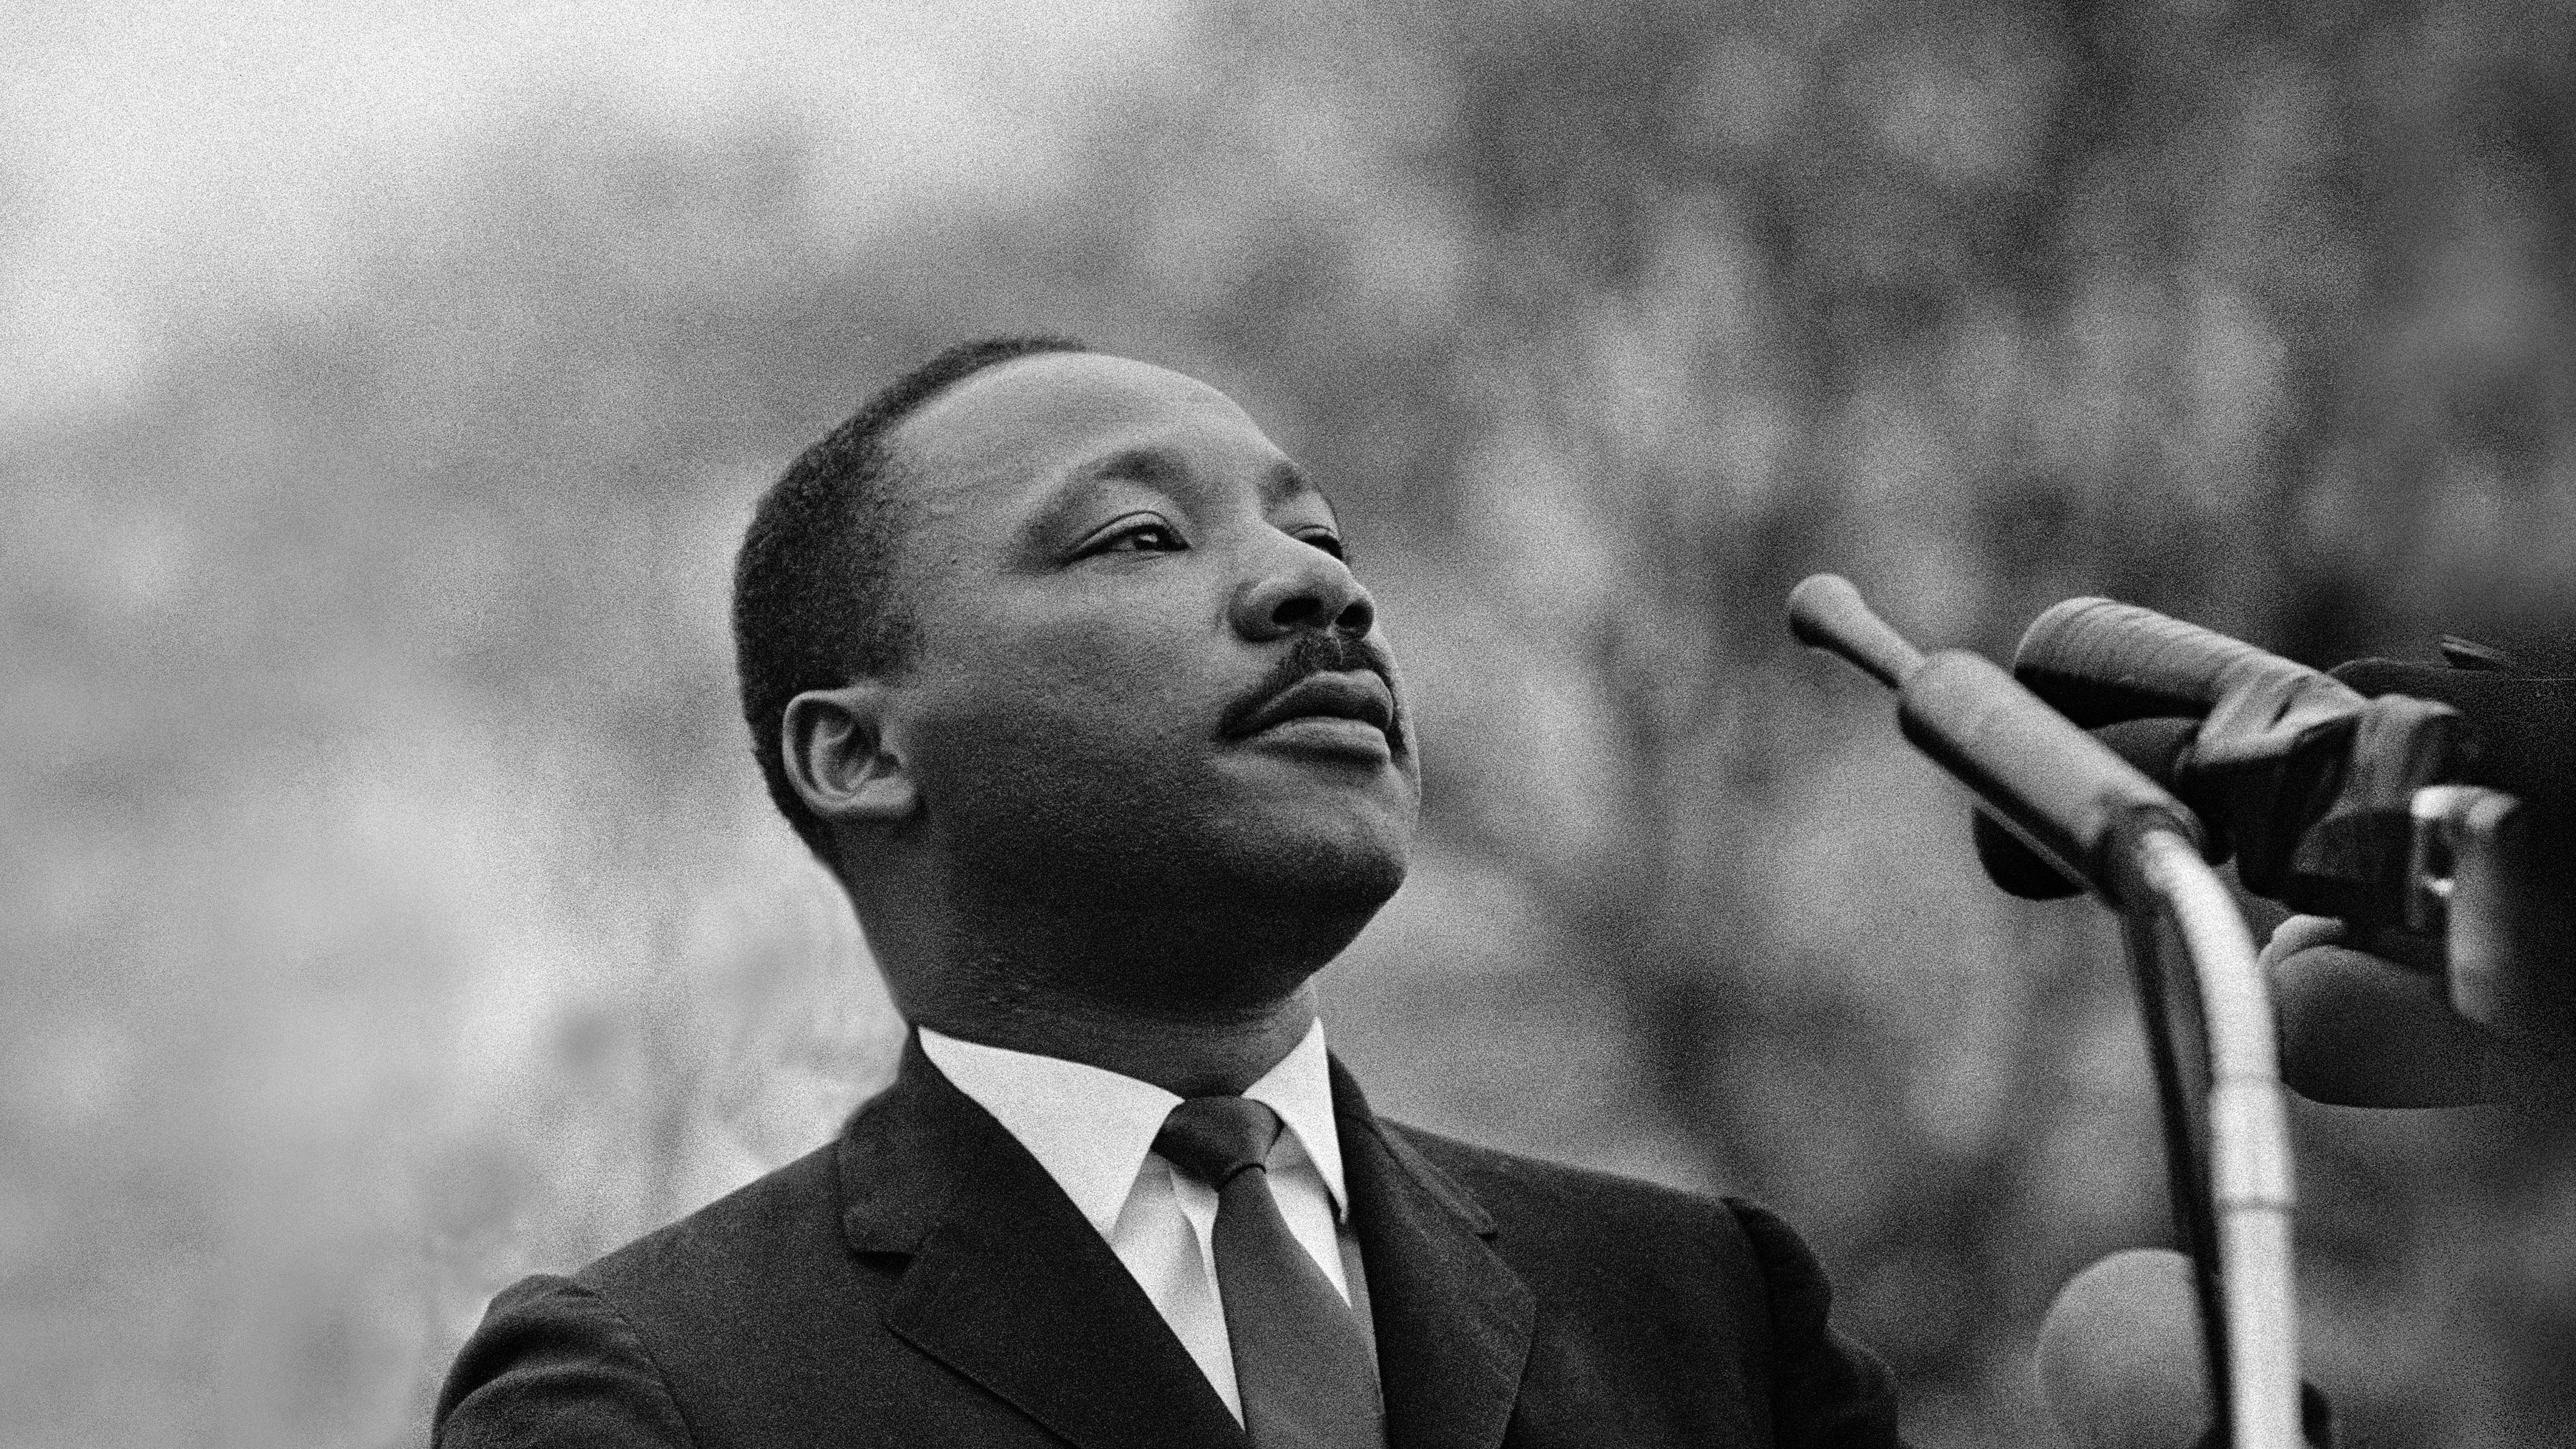 Biography Of Civil Rights Leader Martin Luther King Jr